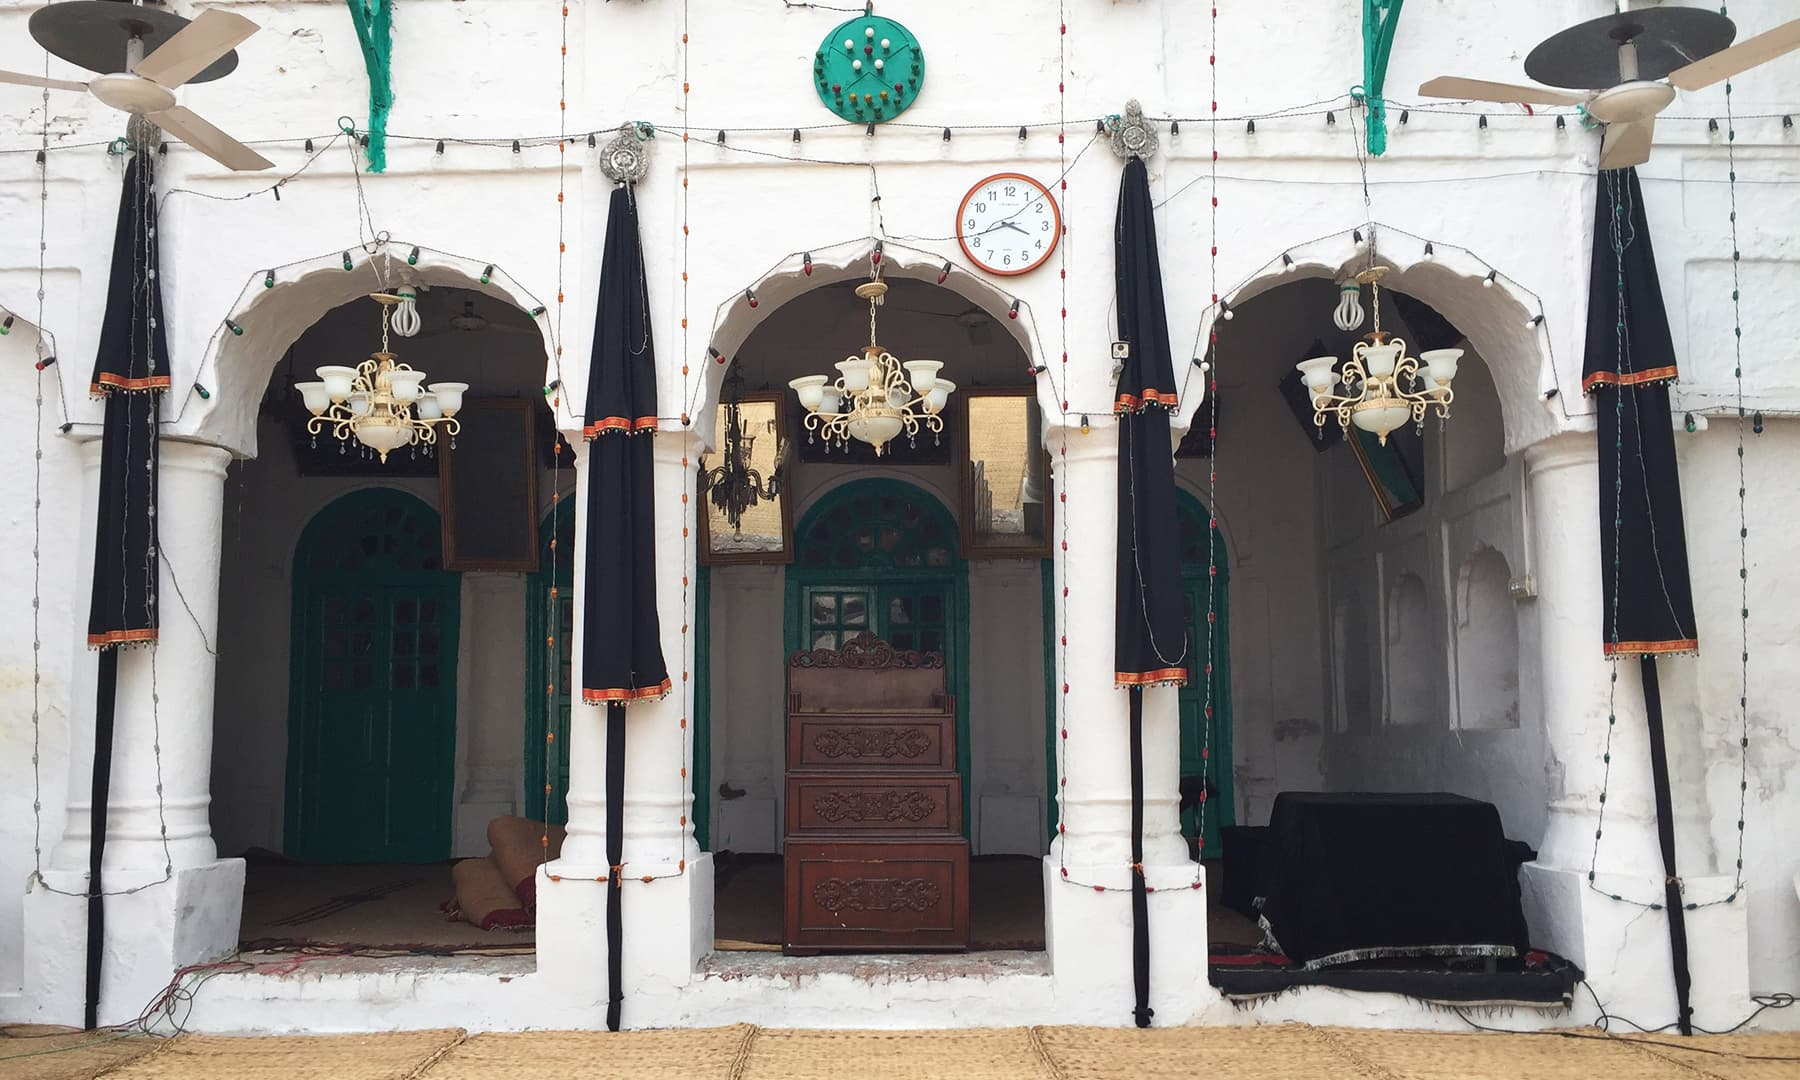 A wooden pulpit at Nisar 'haveli' where the 'Zakir' (scholar/orator) sits and addresses the mourners. —Taimur Shamil